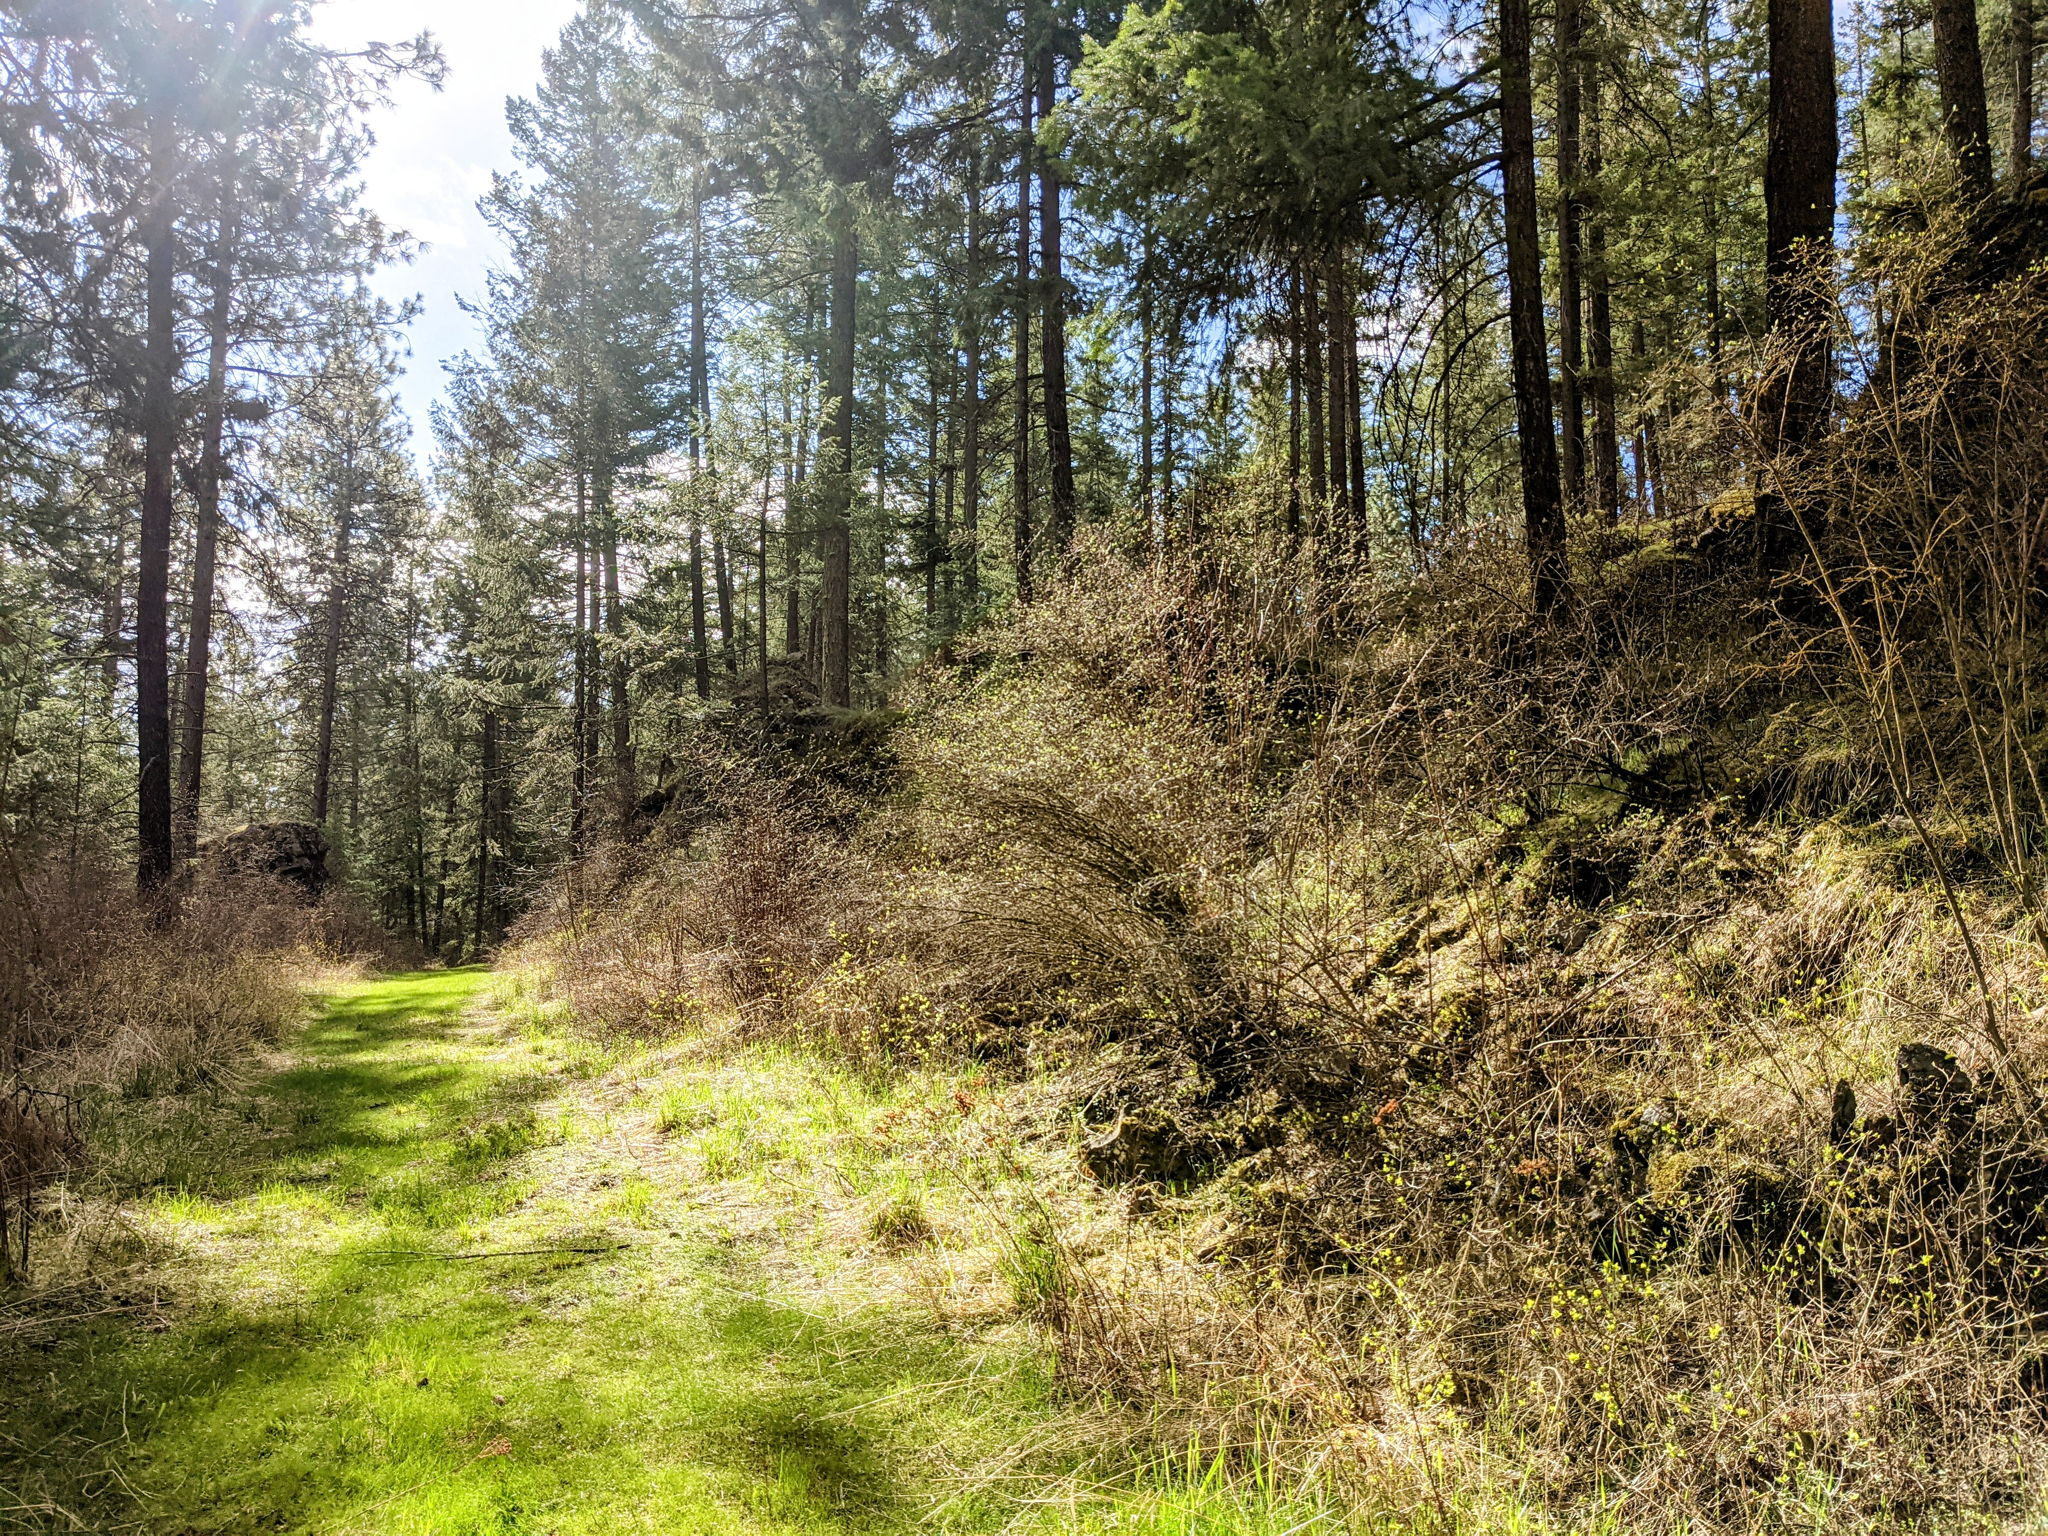 Hiking Trails On Property